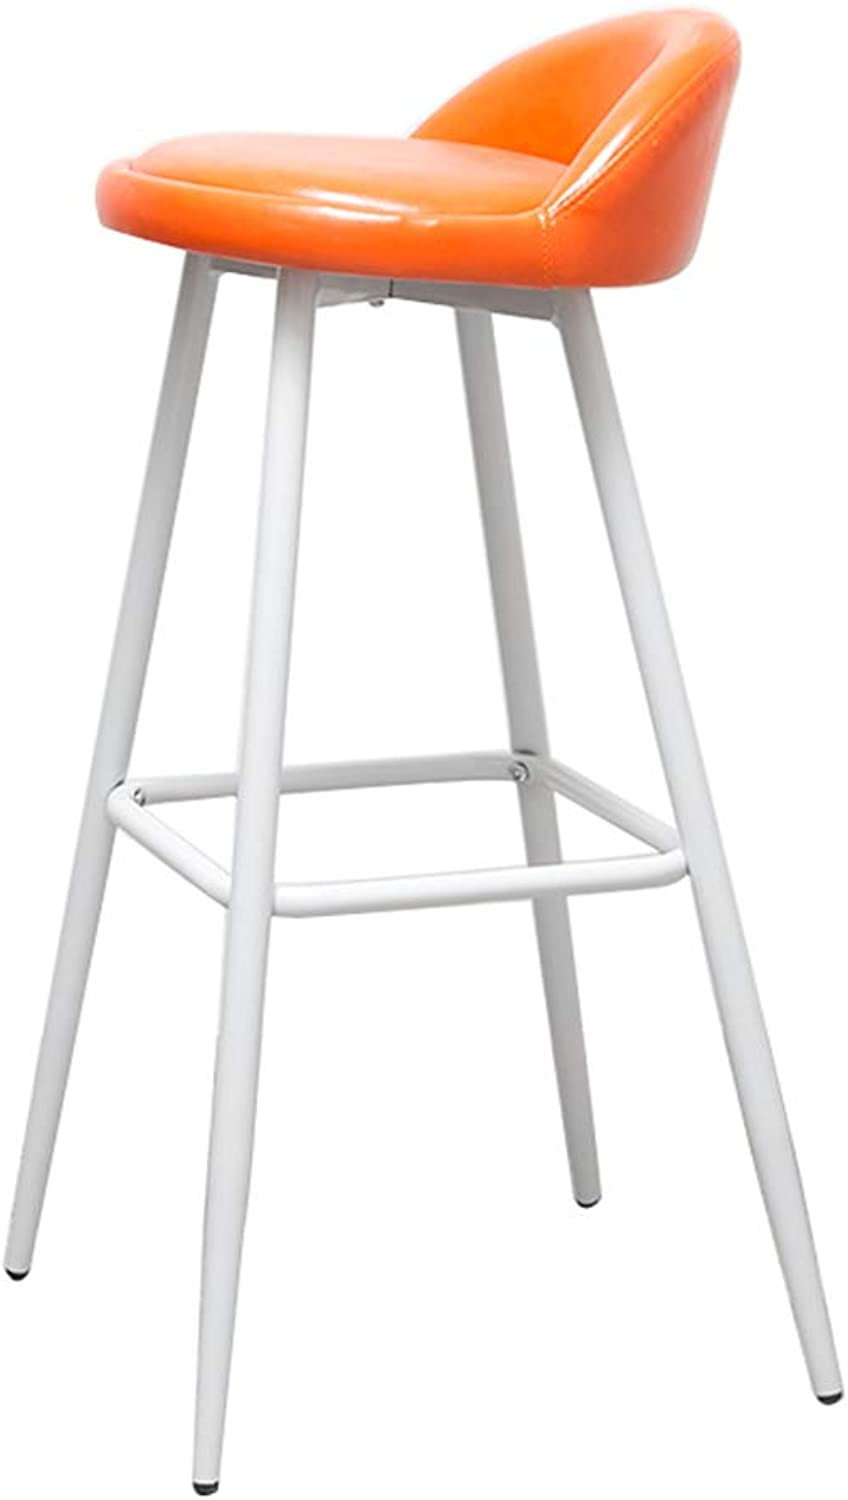 SYF Barstool Modern Fashion White Metal Legs Bar Chair Bar Stool Furniture Kitchen Bench orange PU Cushion Design Sitting High 79CM A+